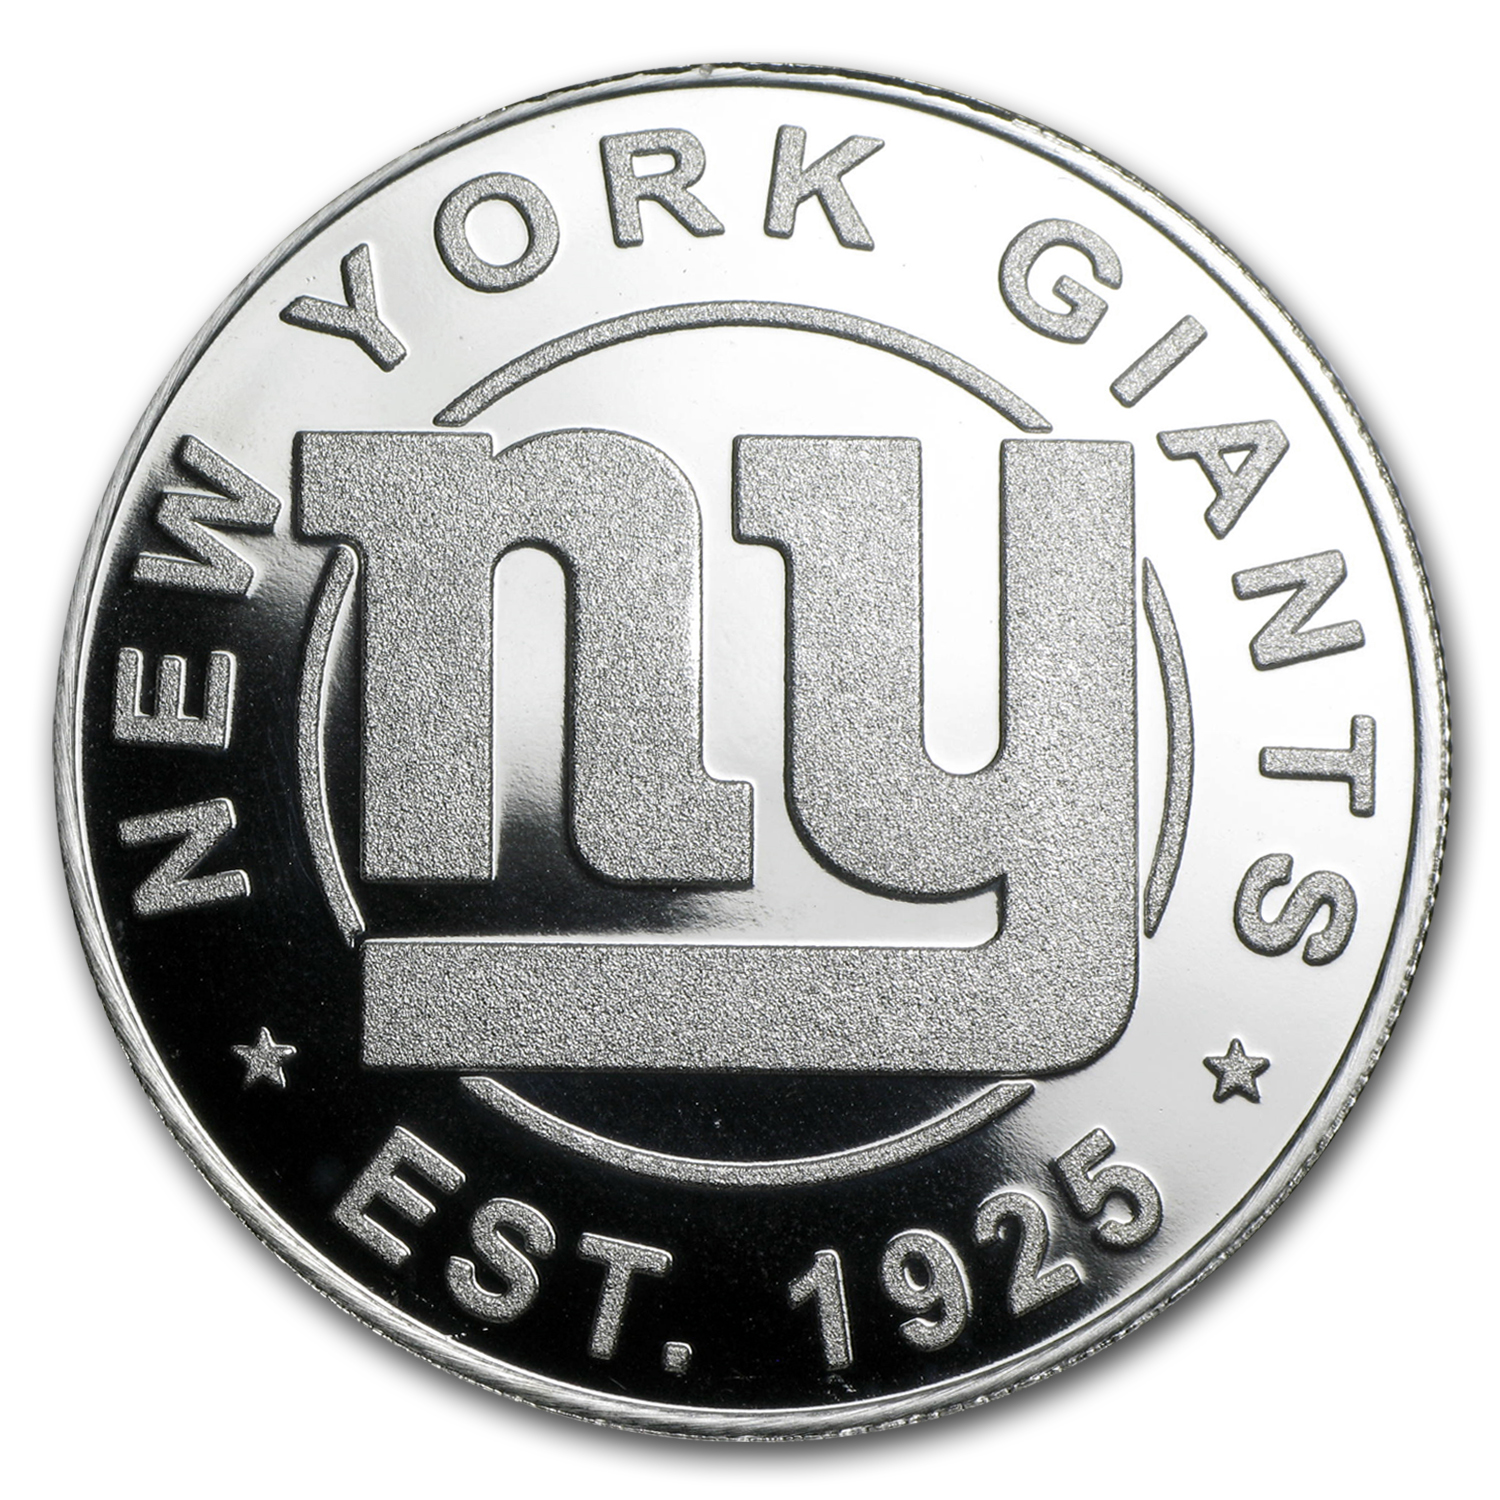 1 oz Silver Round - New York Giants